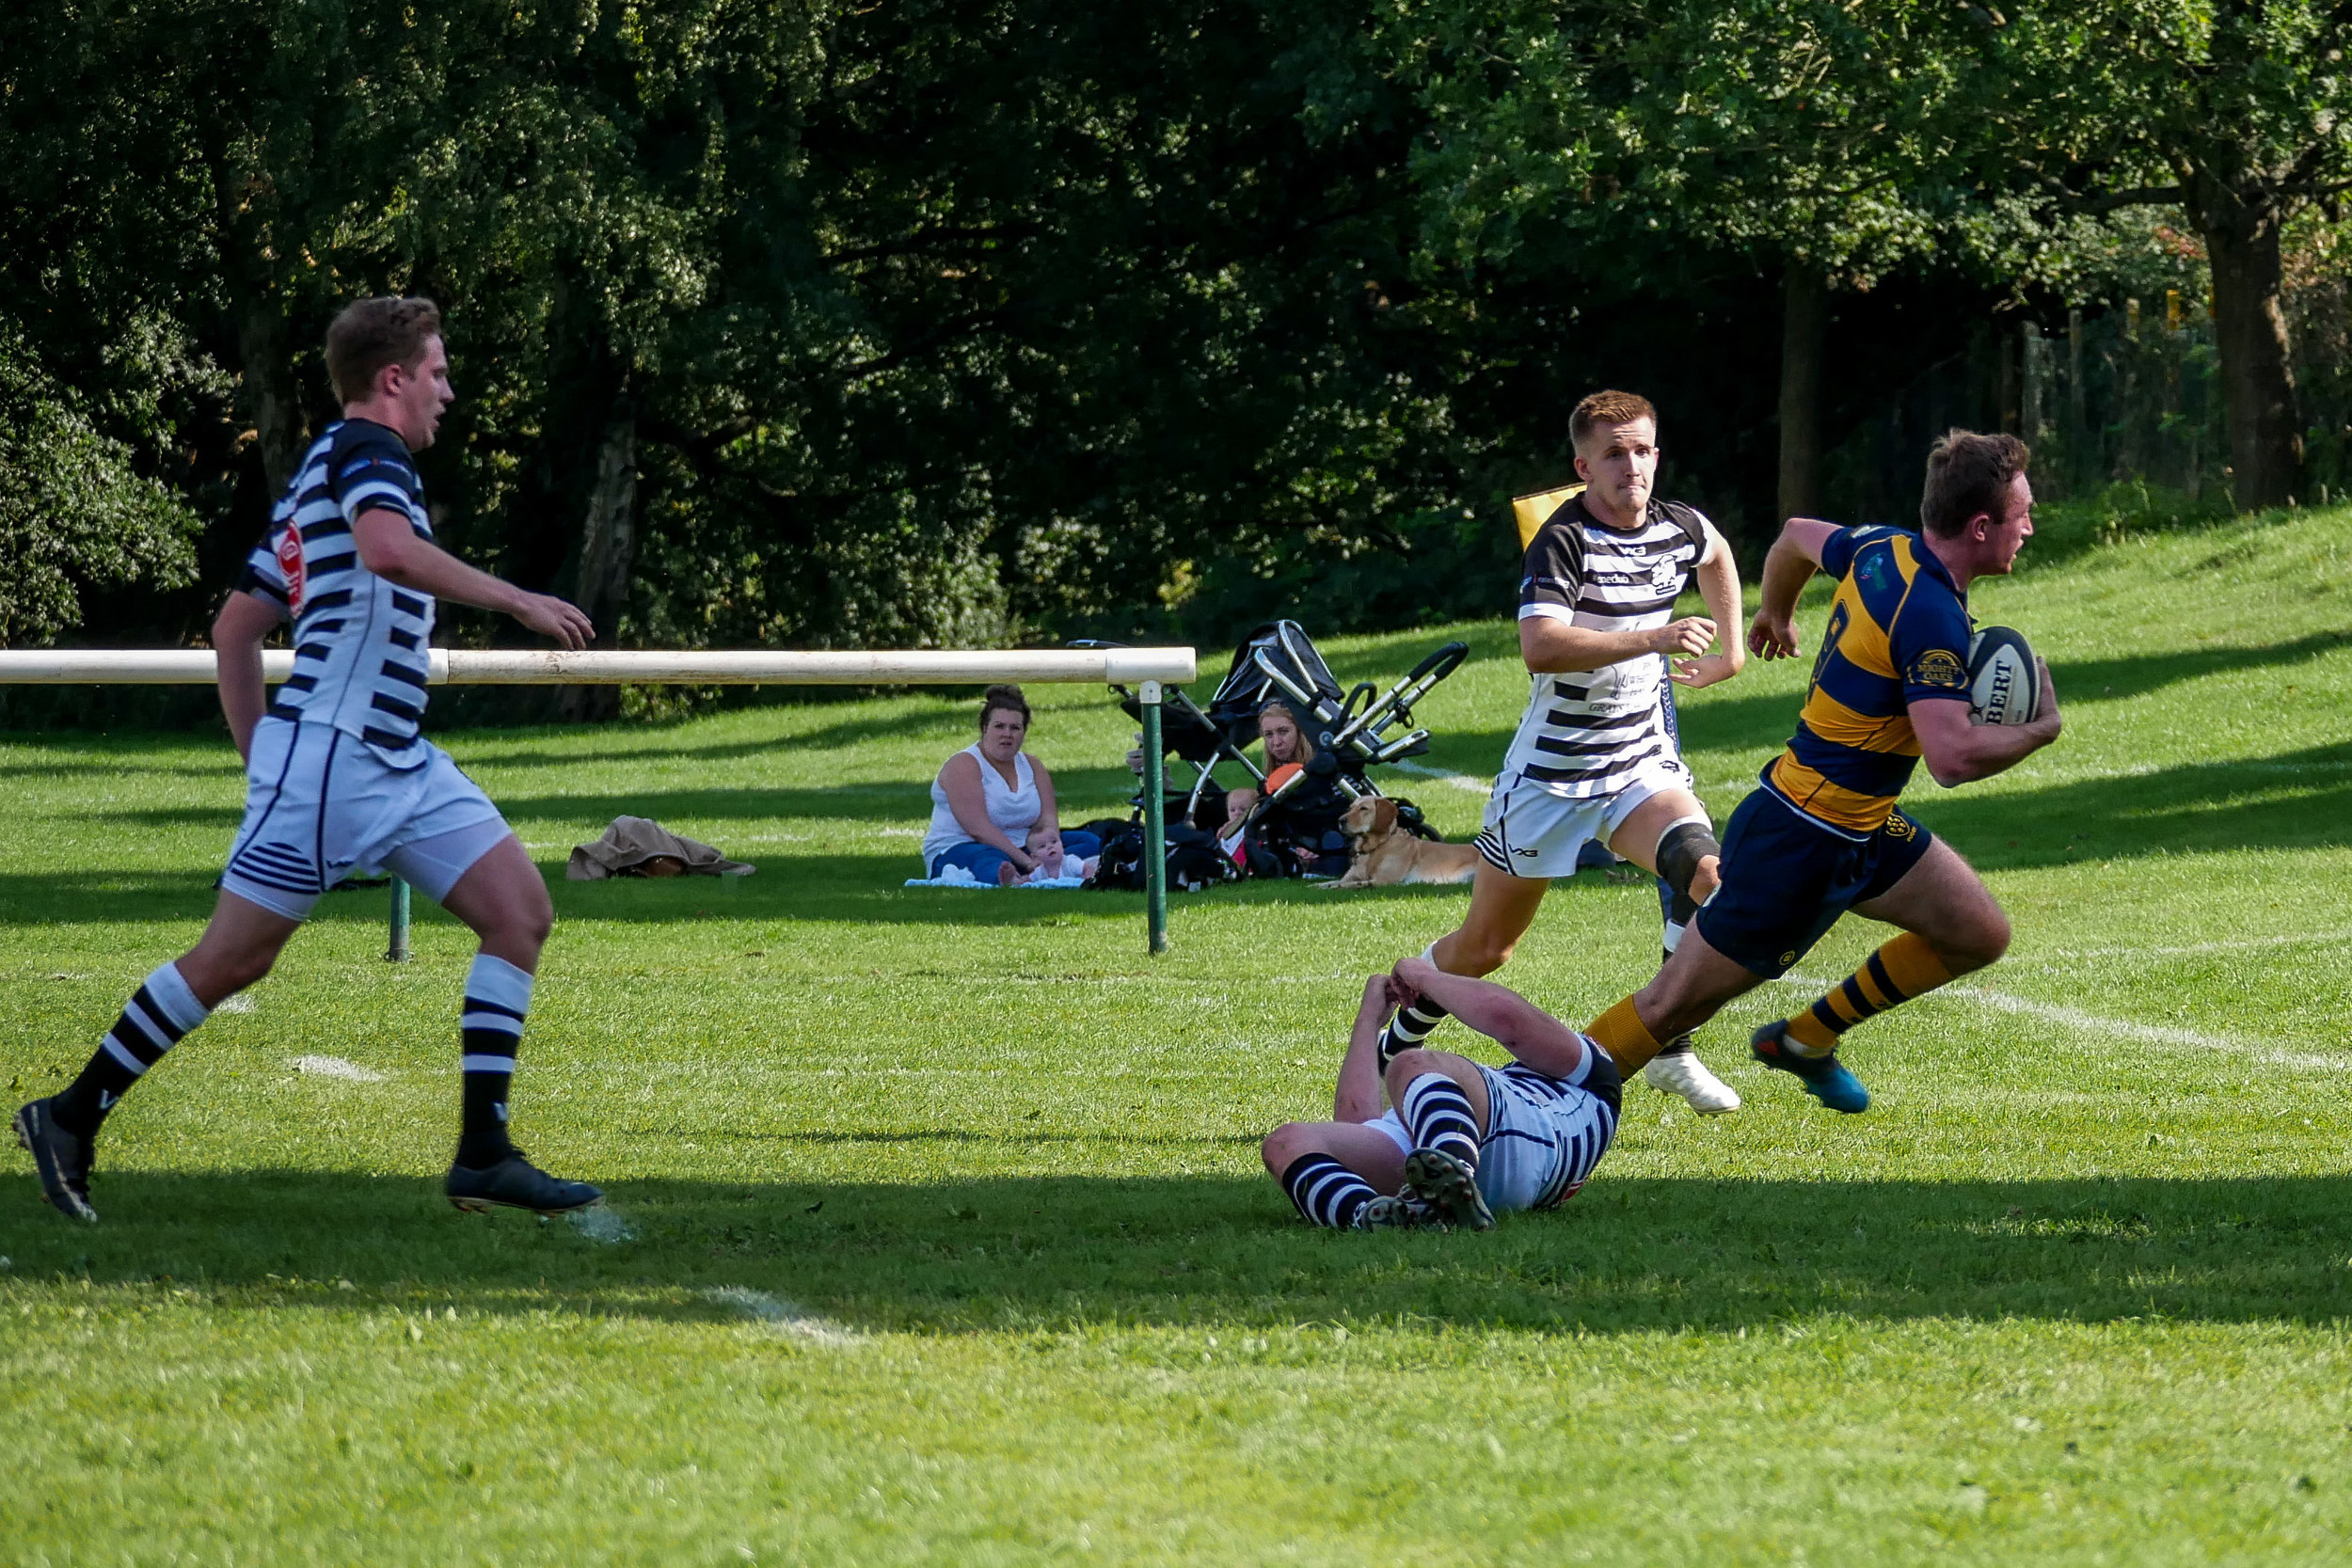 Oaks Matt Holmes evades the Thurrock defence to score a try in the opening game of the season at the Paddock in September.  Photo Credit: David Purday